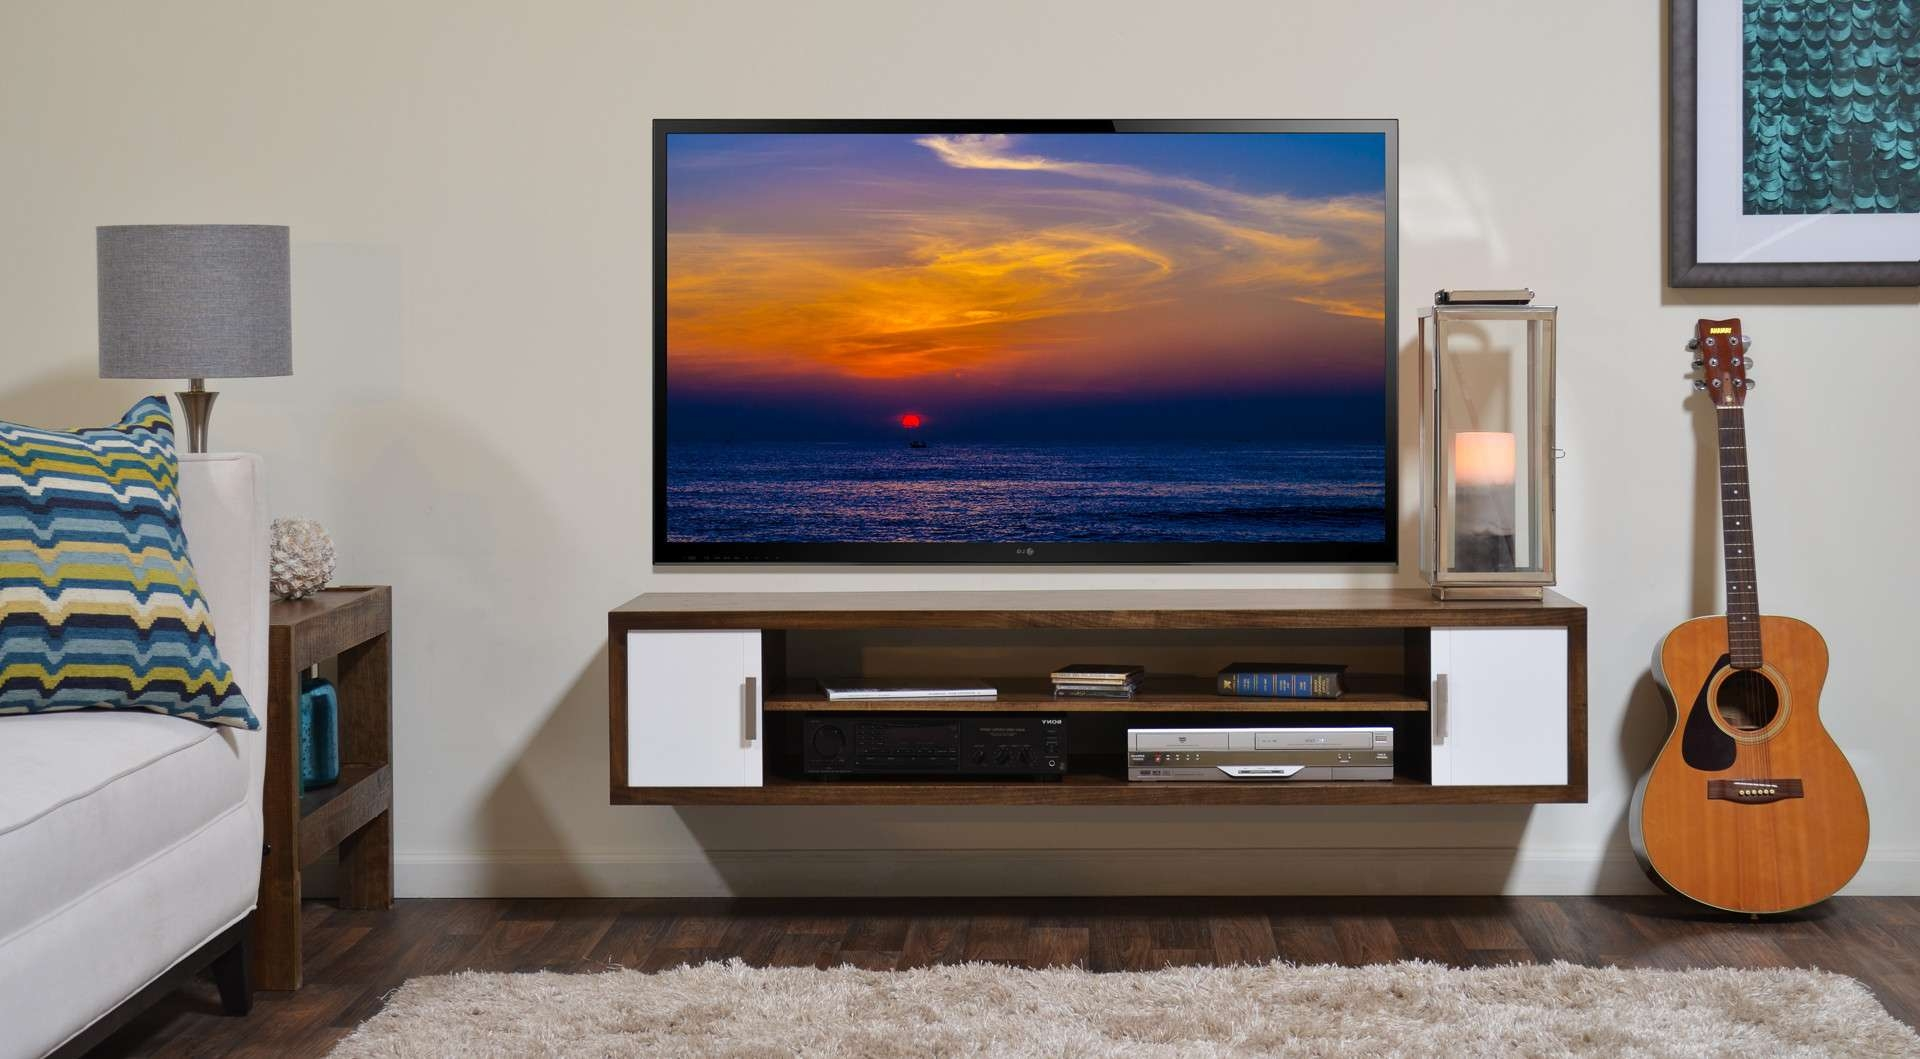 Nice Design Of The Tv Stand White Wall Can Be Decor With Wooden Inside White Wall Mounted Tv Stands (View 15 of 15)